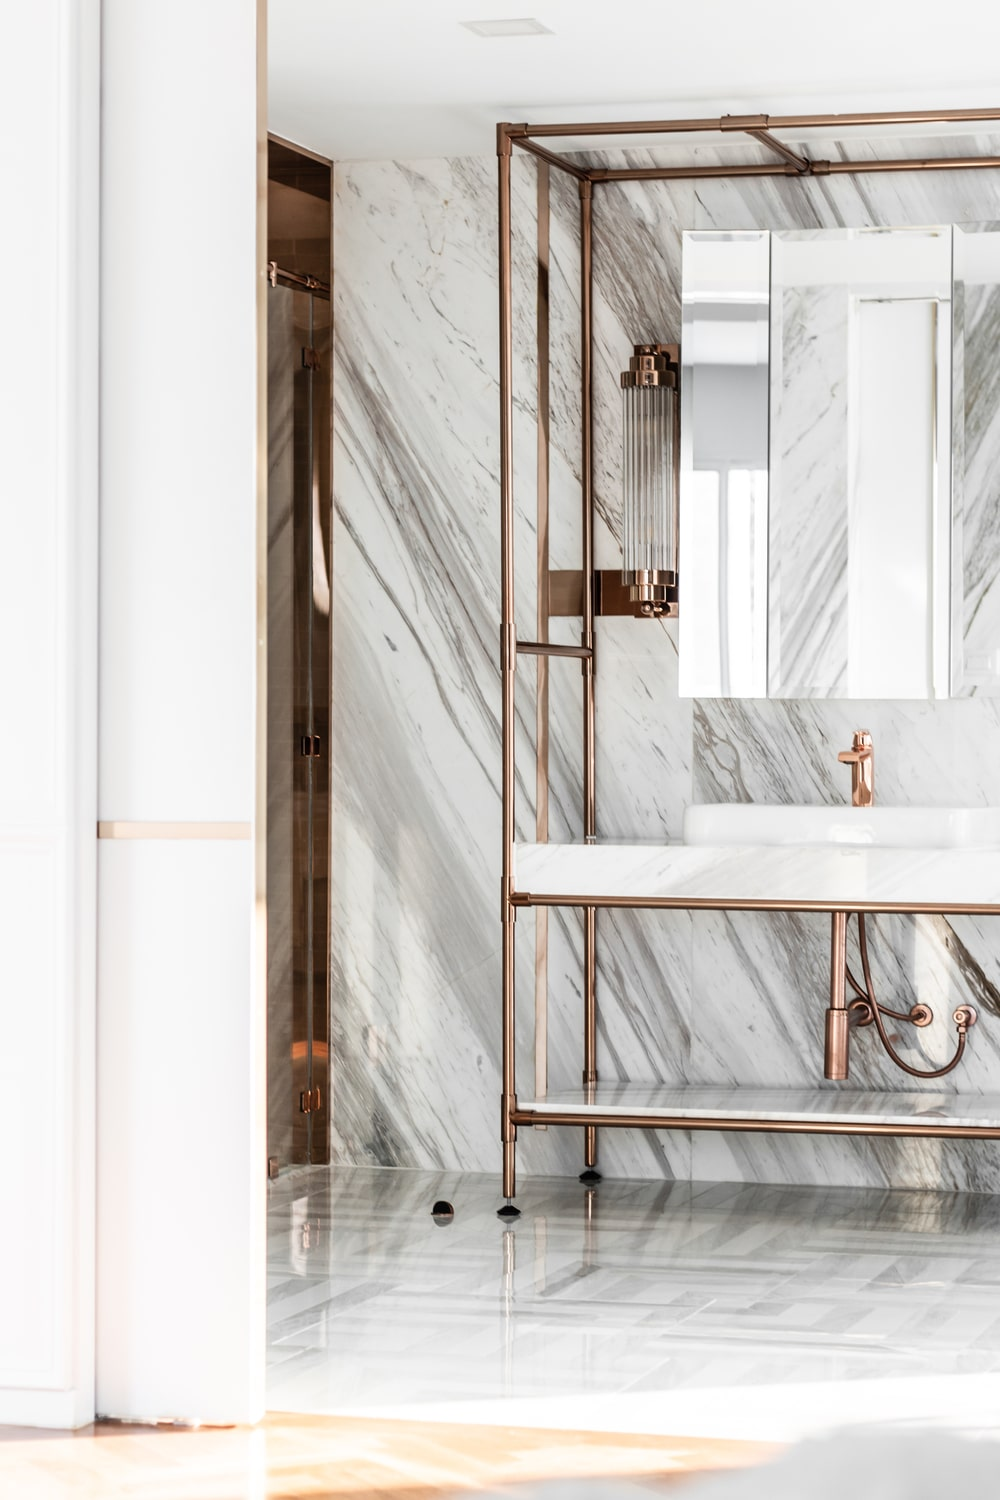 The two sinks of the vanity area is topped with wall-mounted mirrors that shine along with the white marble wall behind.